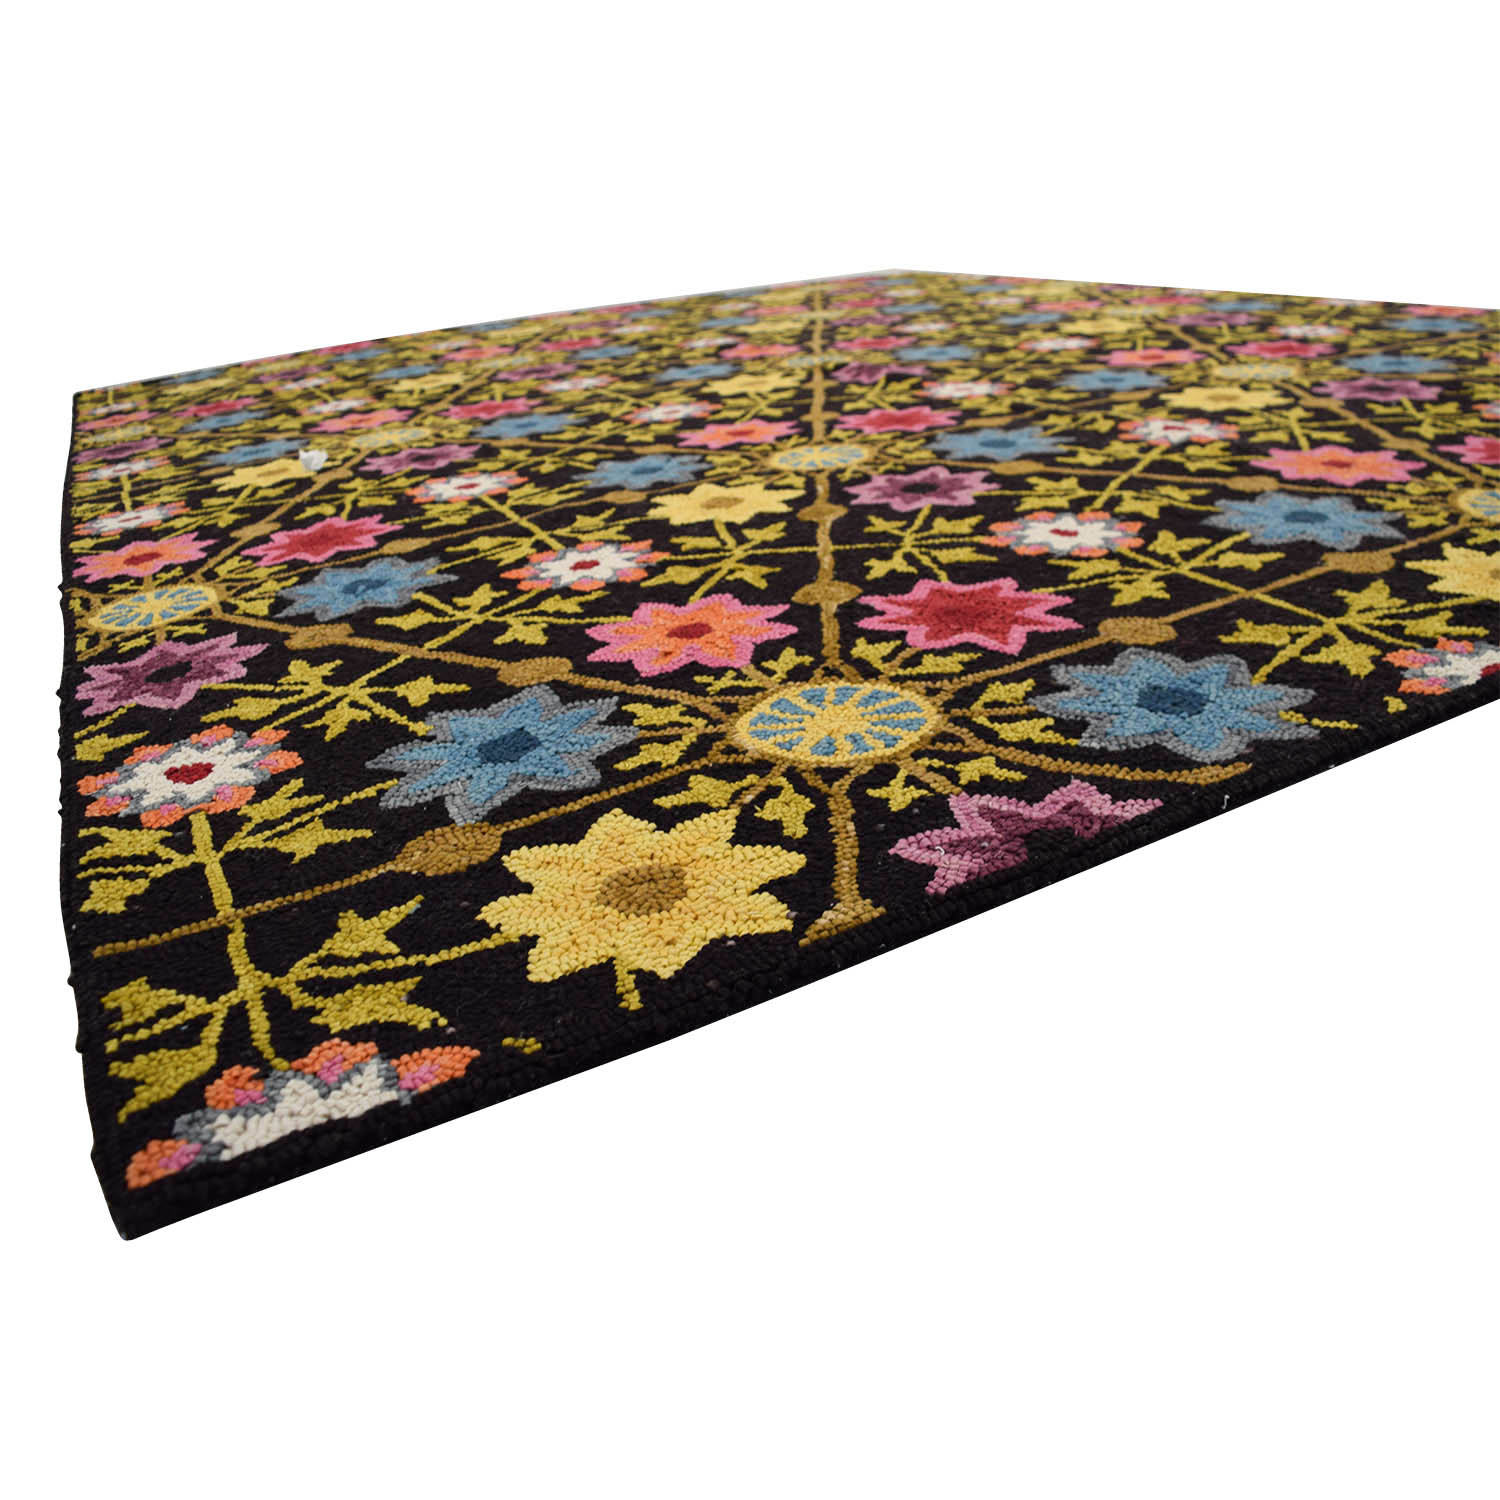 Obeetee Obeetee Black with Multi-Colored Floral Rug second hand